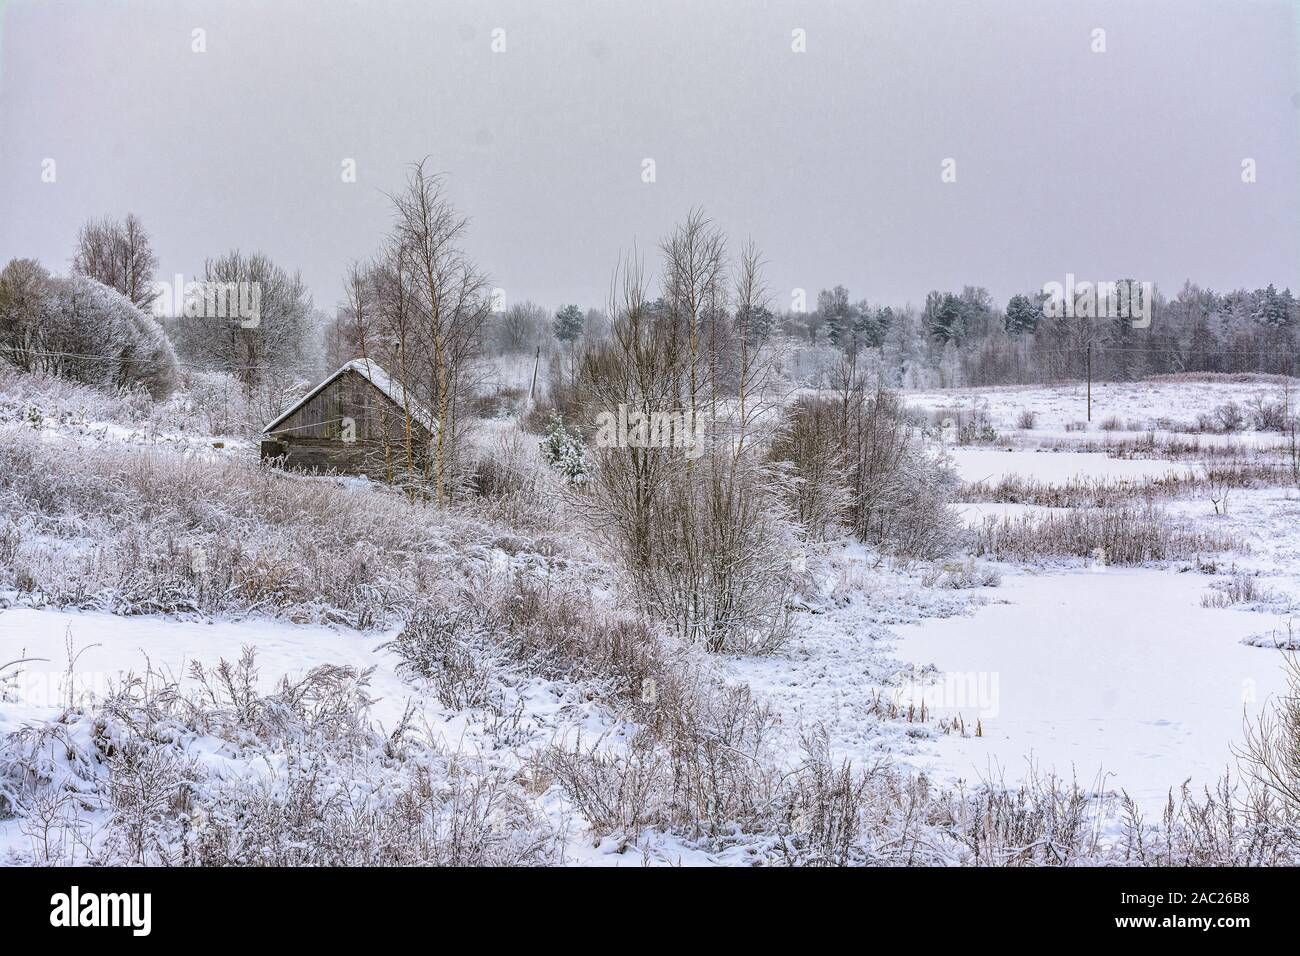 Snowy December day in the countryside. Stock Photo